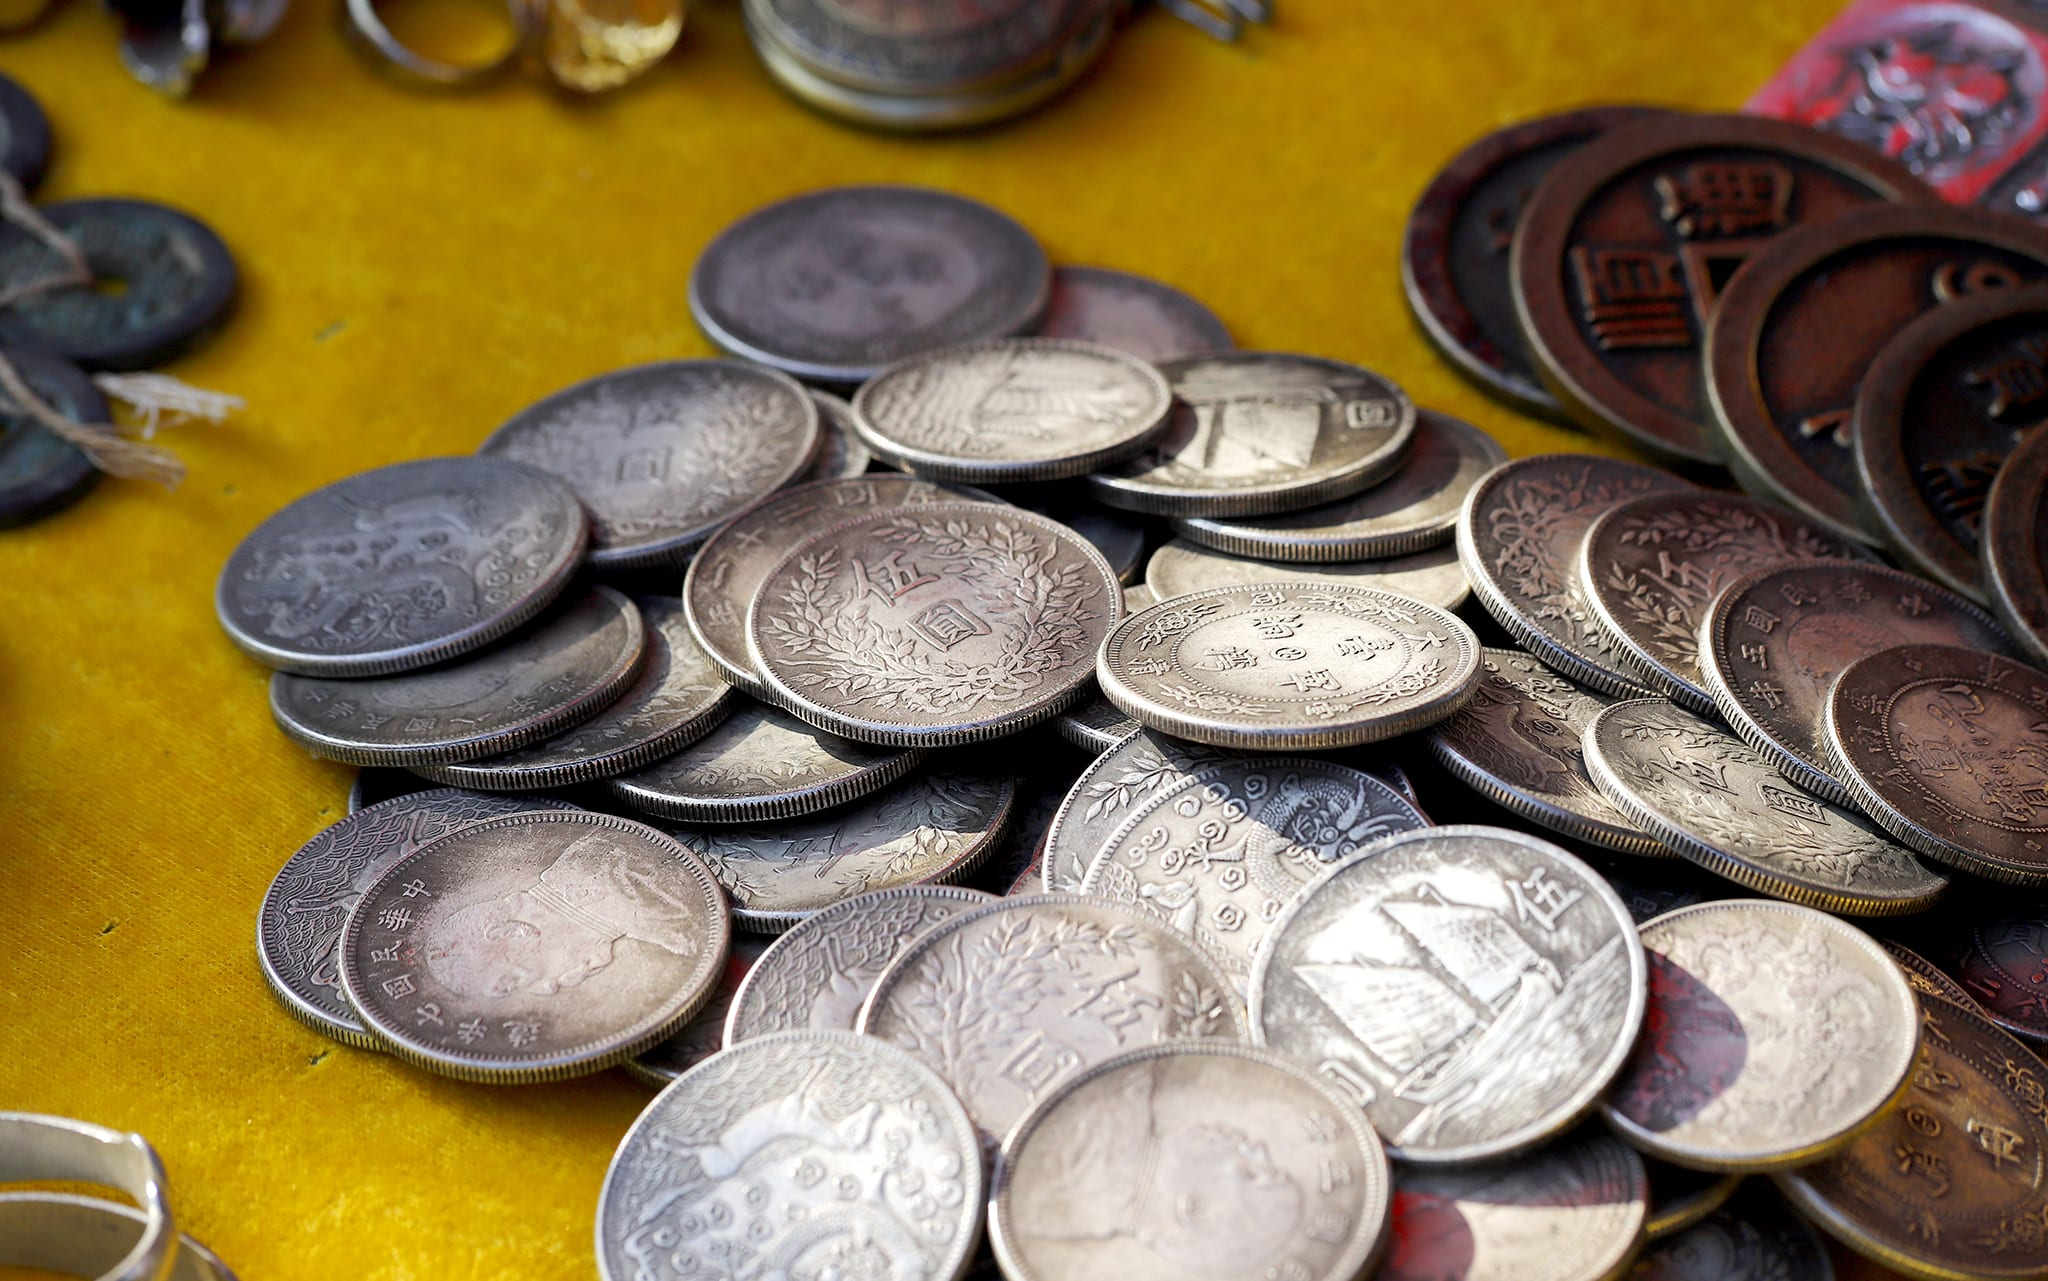 silver coins are a valuable asset to collect and ramzs has a great selection to choose from